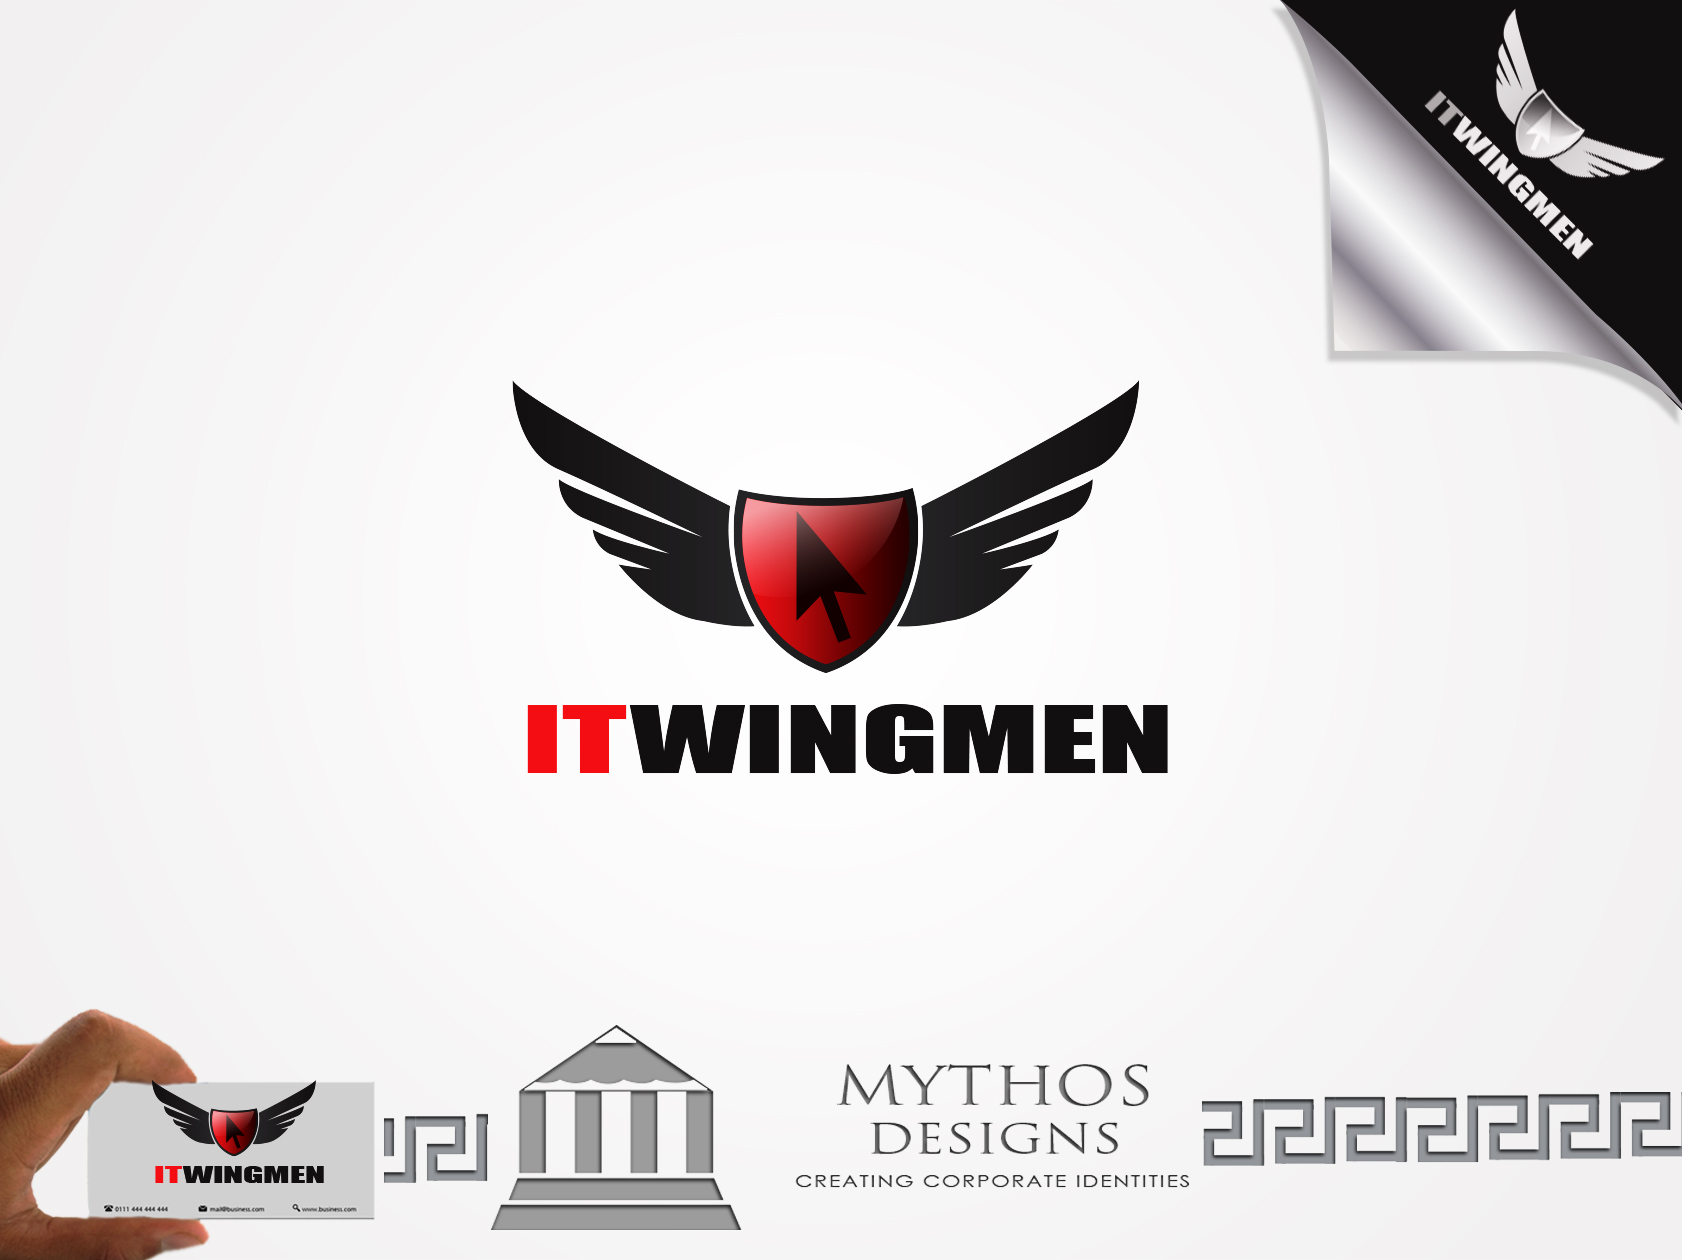 Logo Design by Mythos Designs - Entry No. 70 in the Logo Design Contest New Logo Design for IT Wingmen.